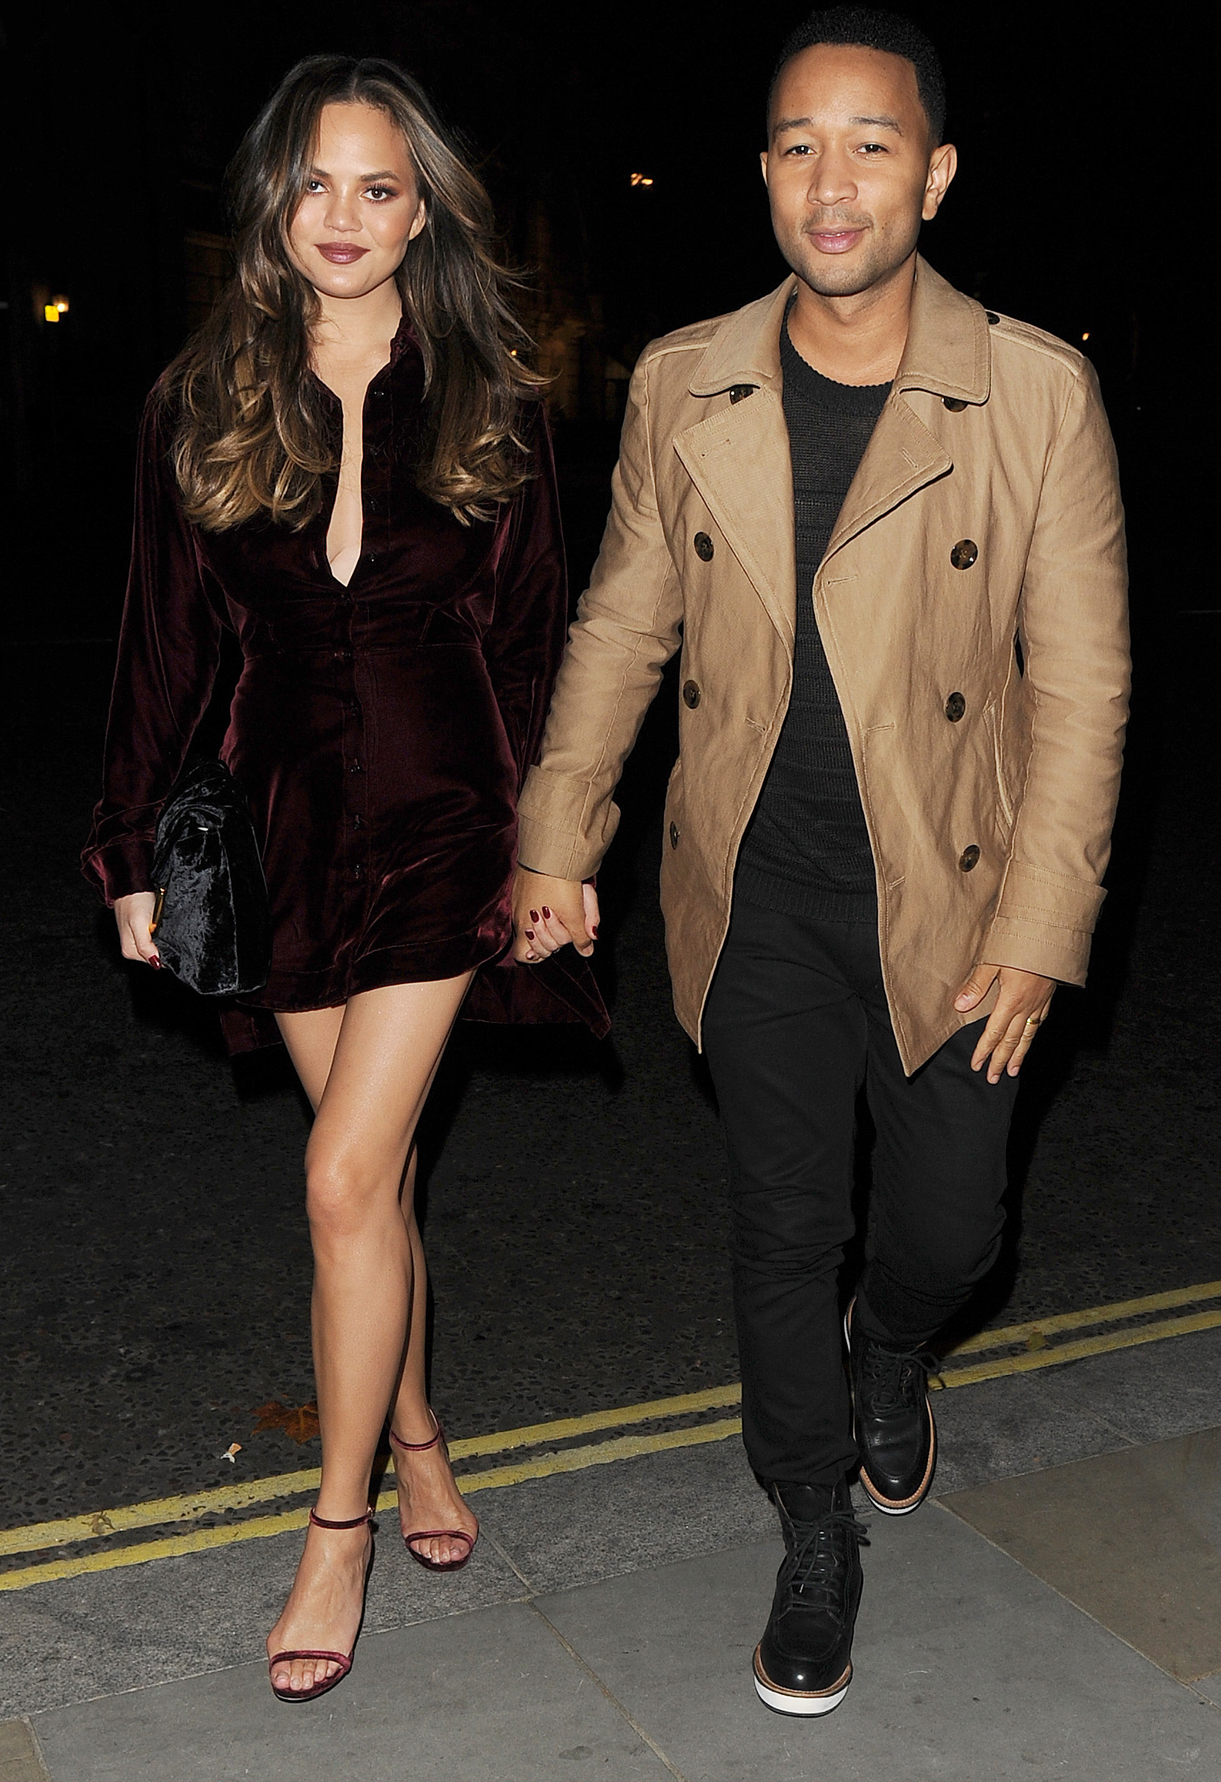 Chrissy Teigen and John Legend - Lead